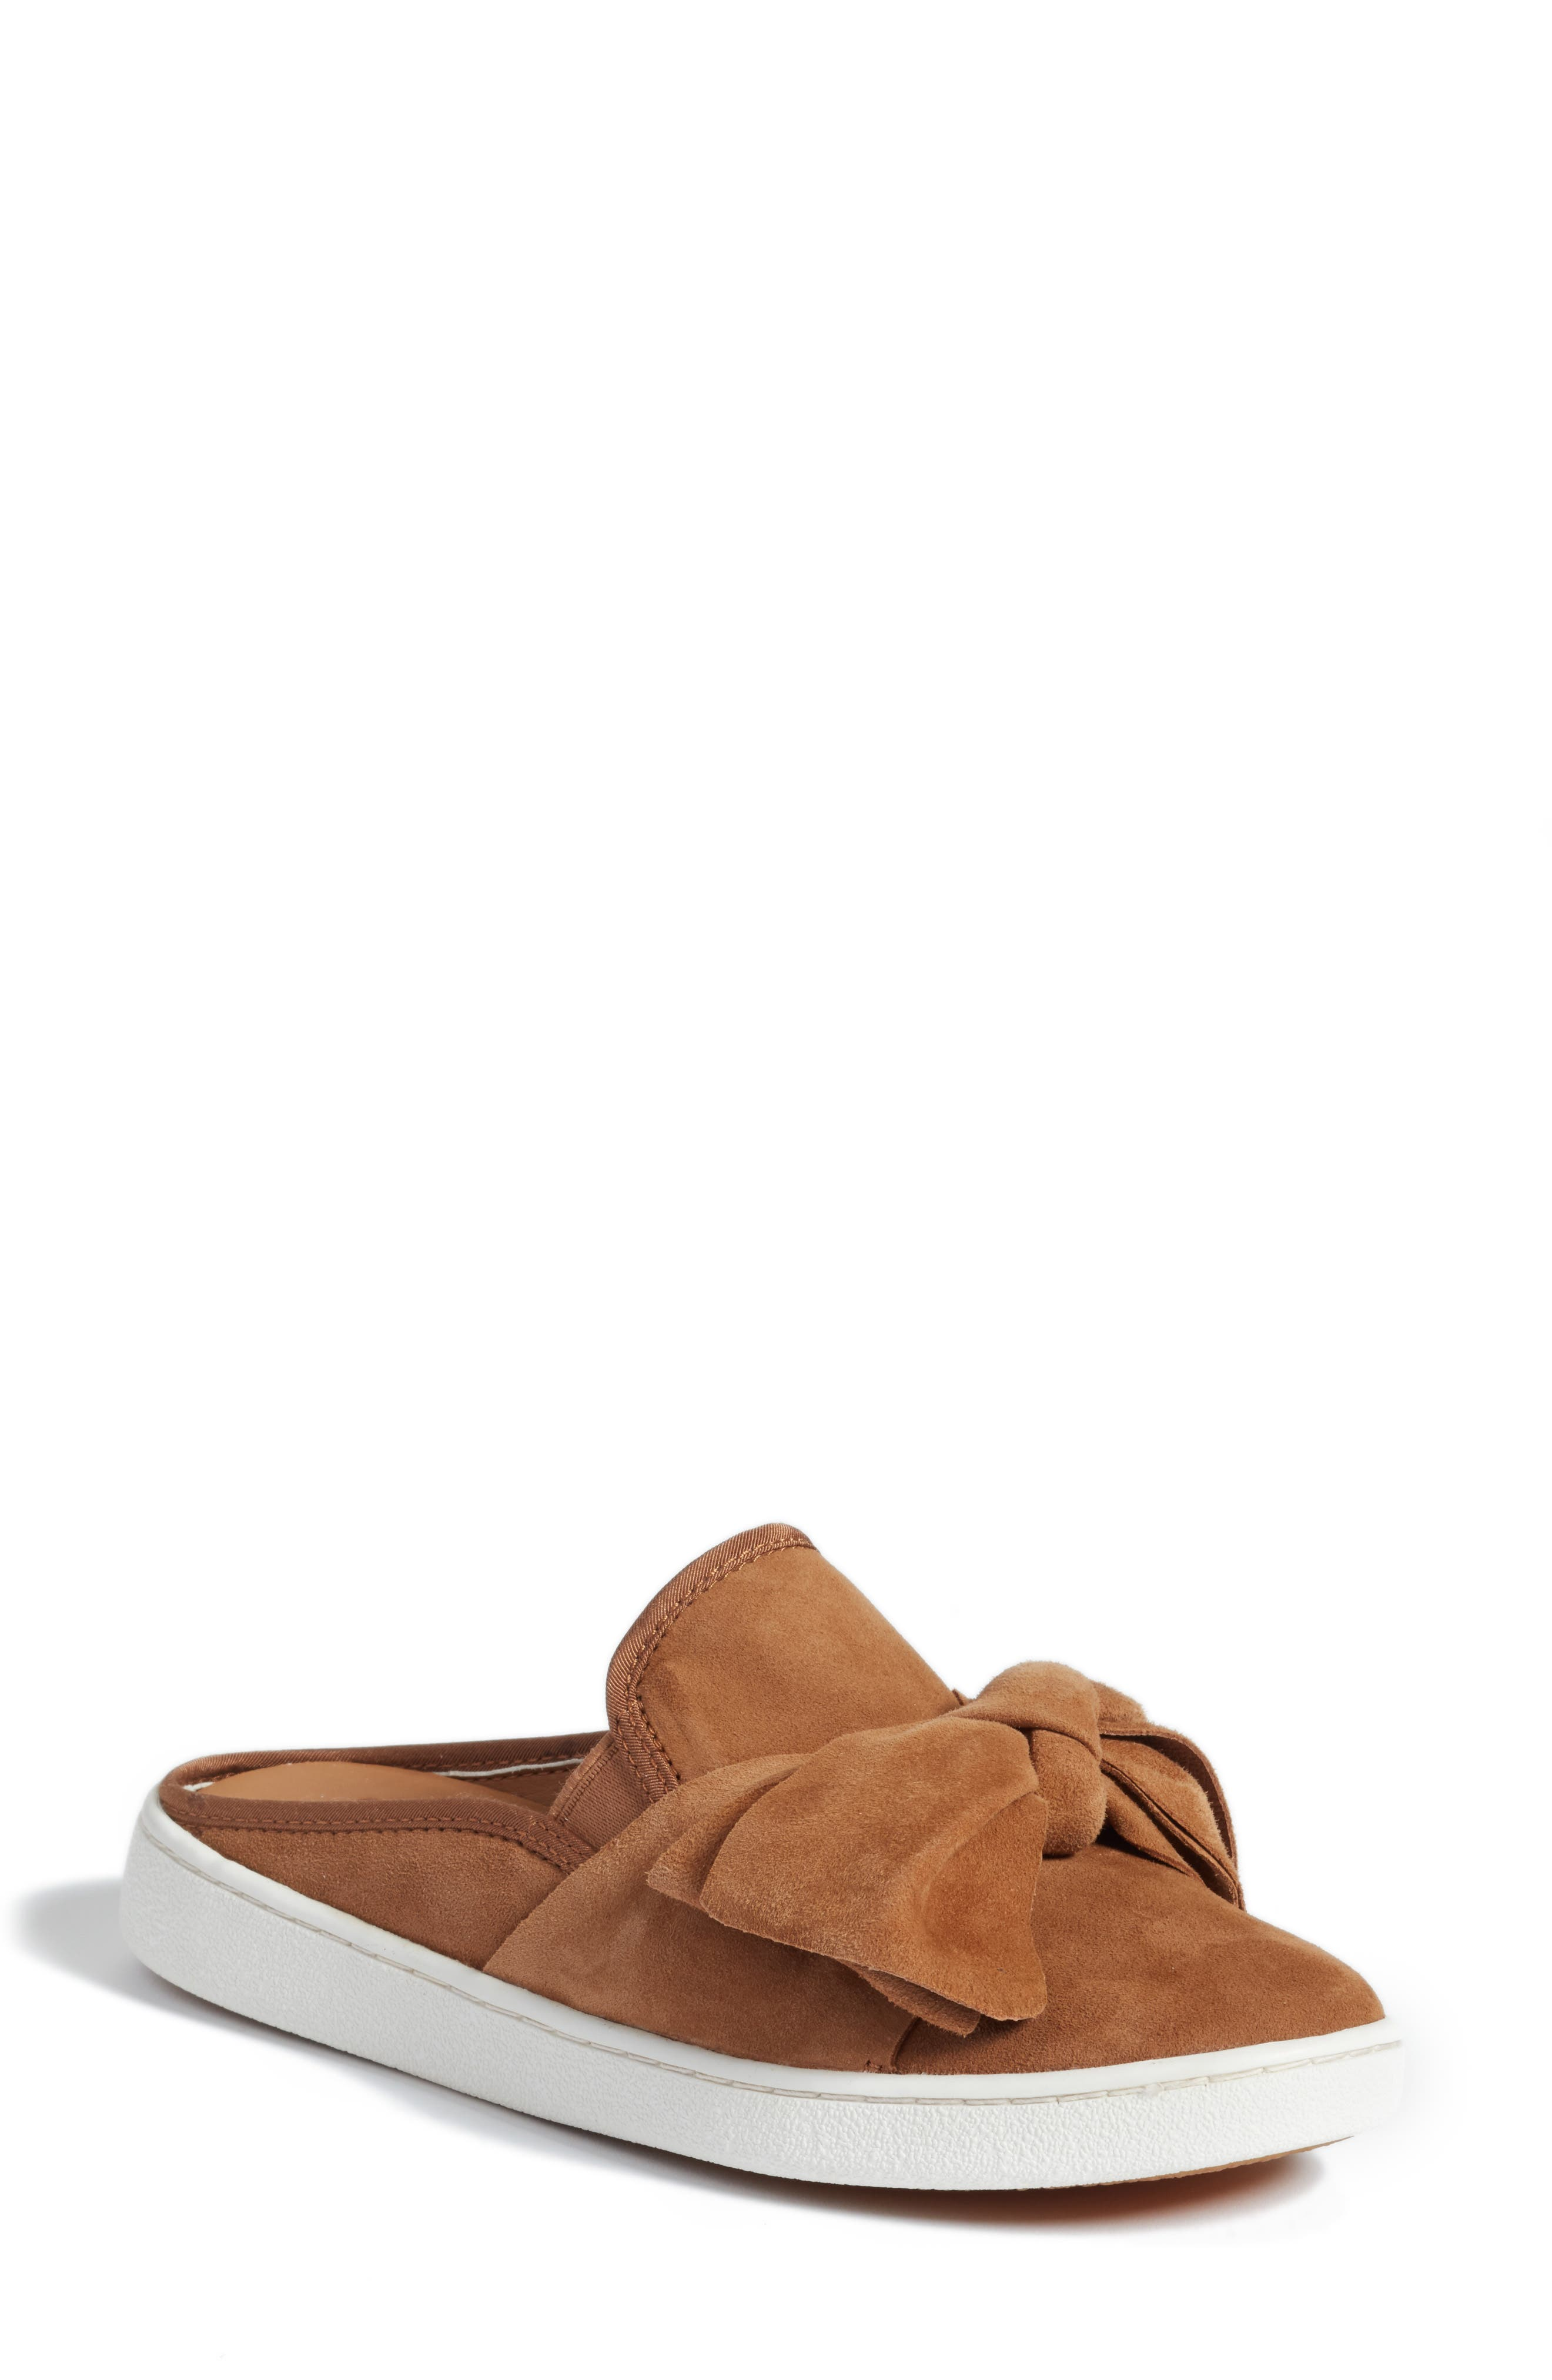 UGG | Luci Bow Sneaker Mule | Nordstrom